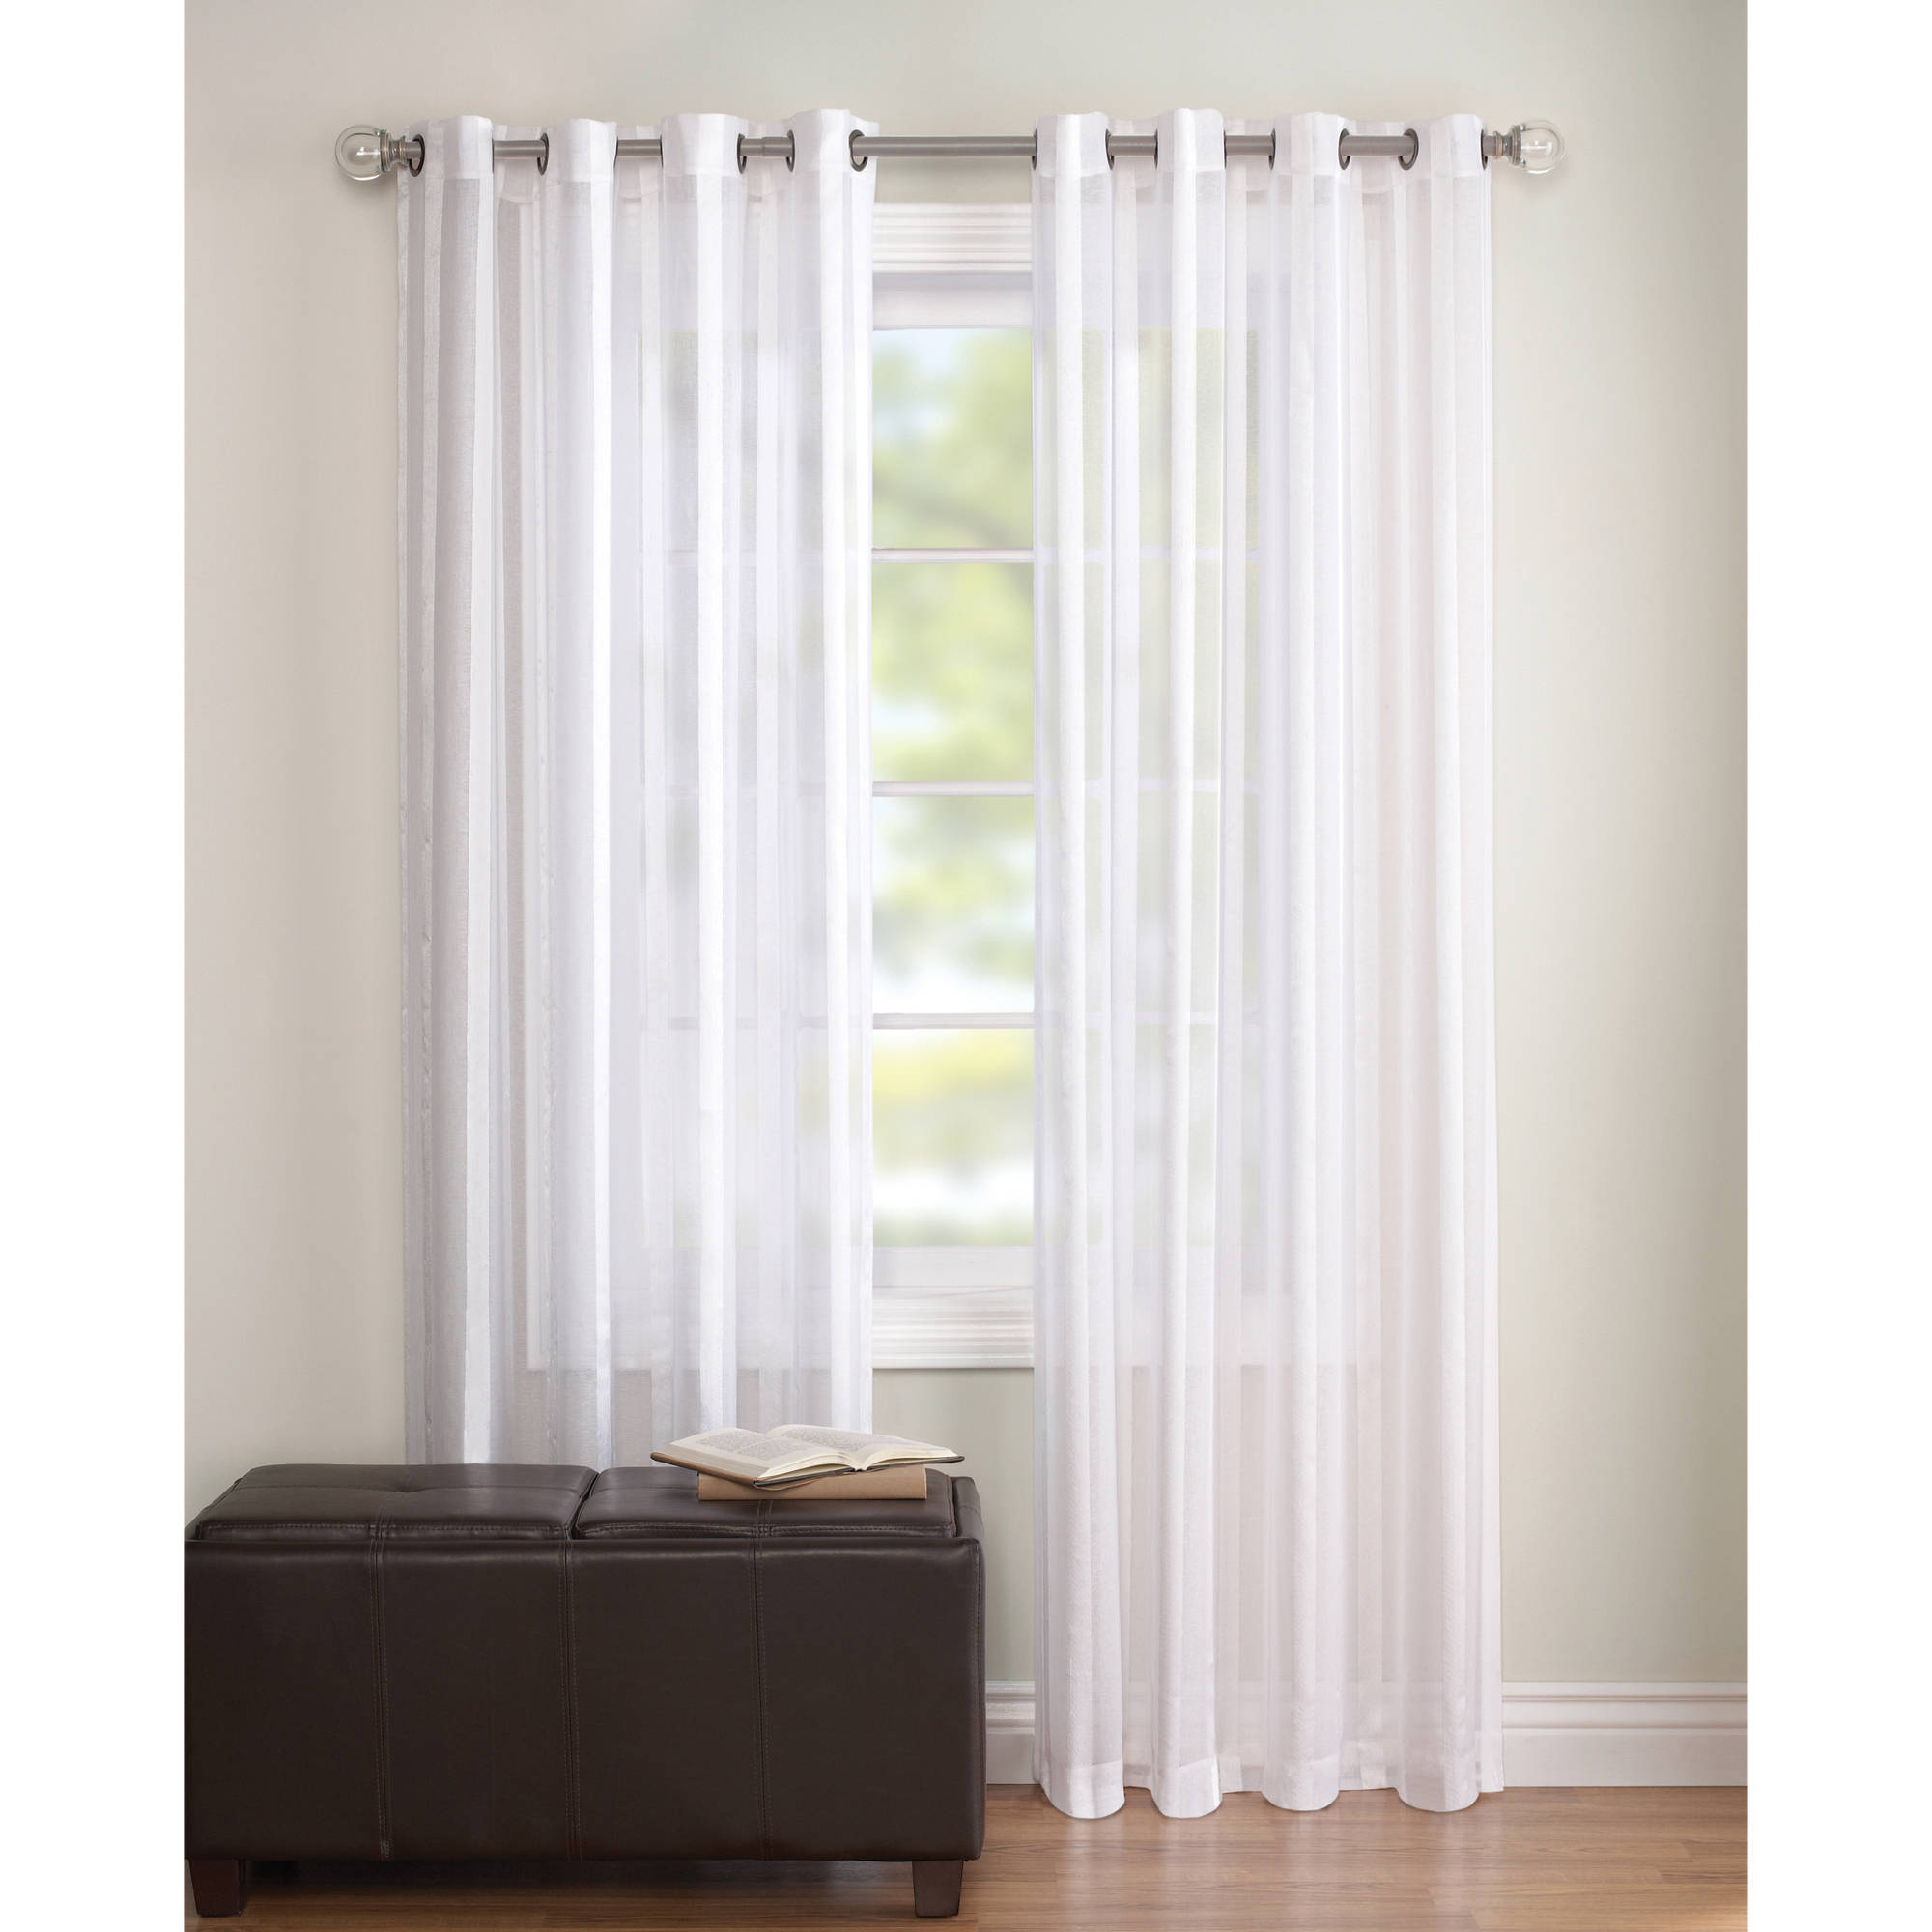 Sheer Curtain better homes and gardens embroidered sheer curtain panel - walmart.com HCXLRUU